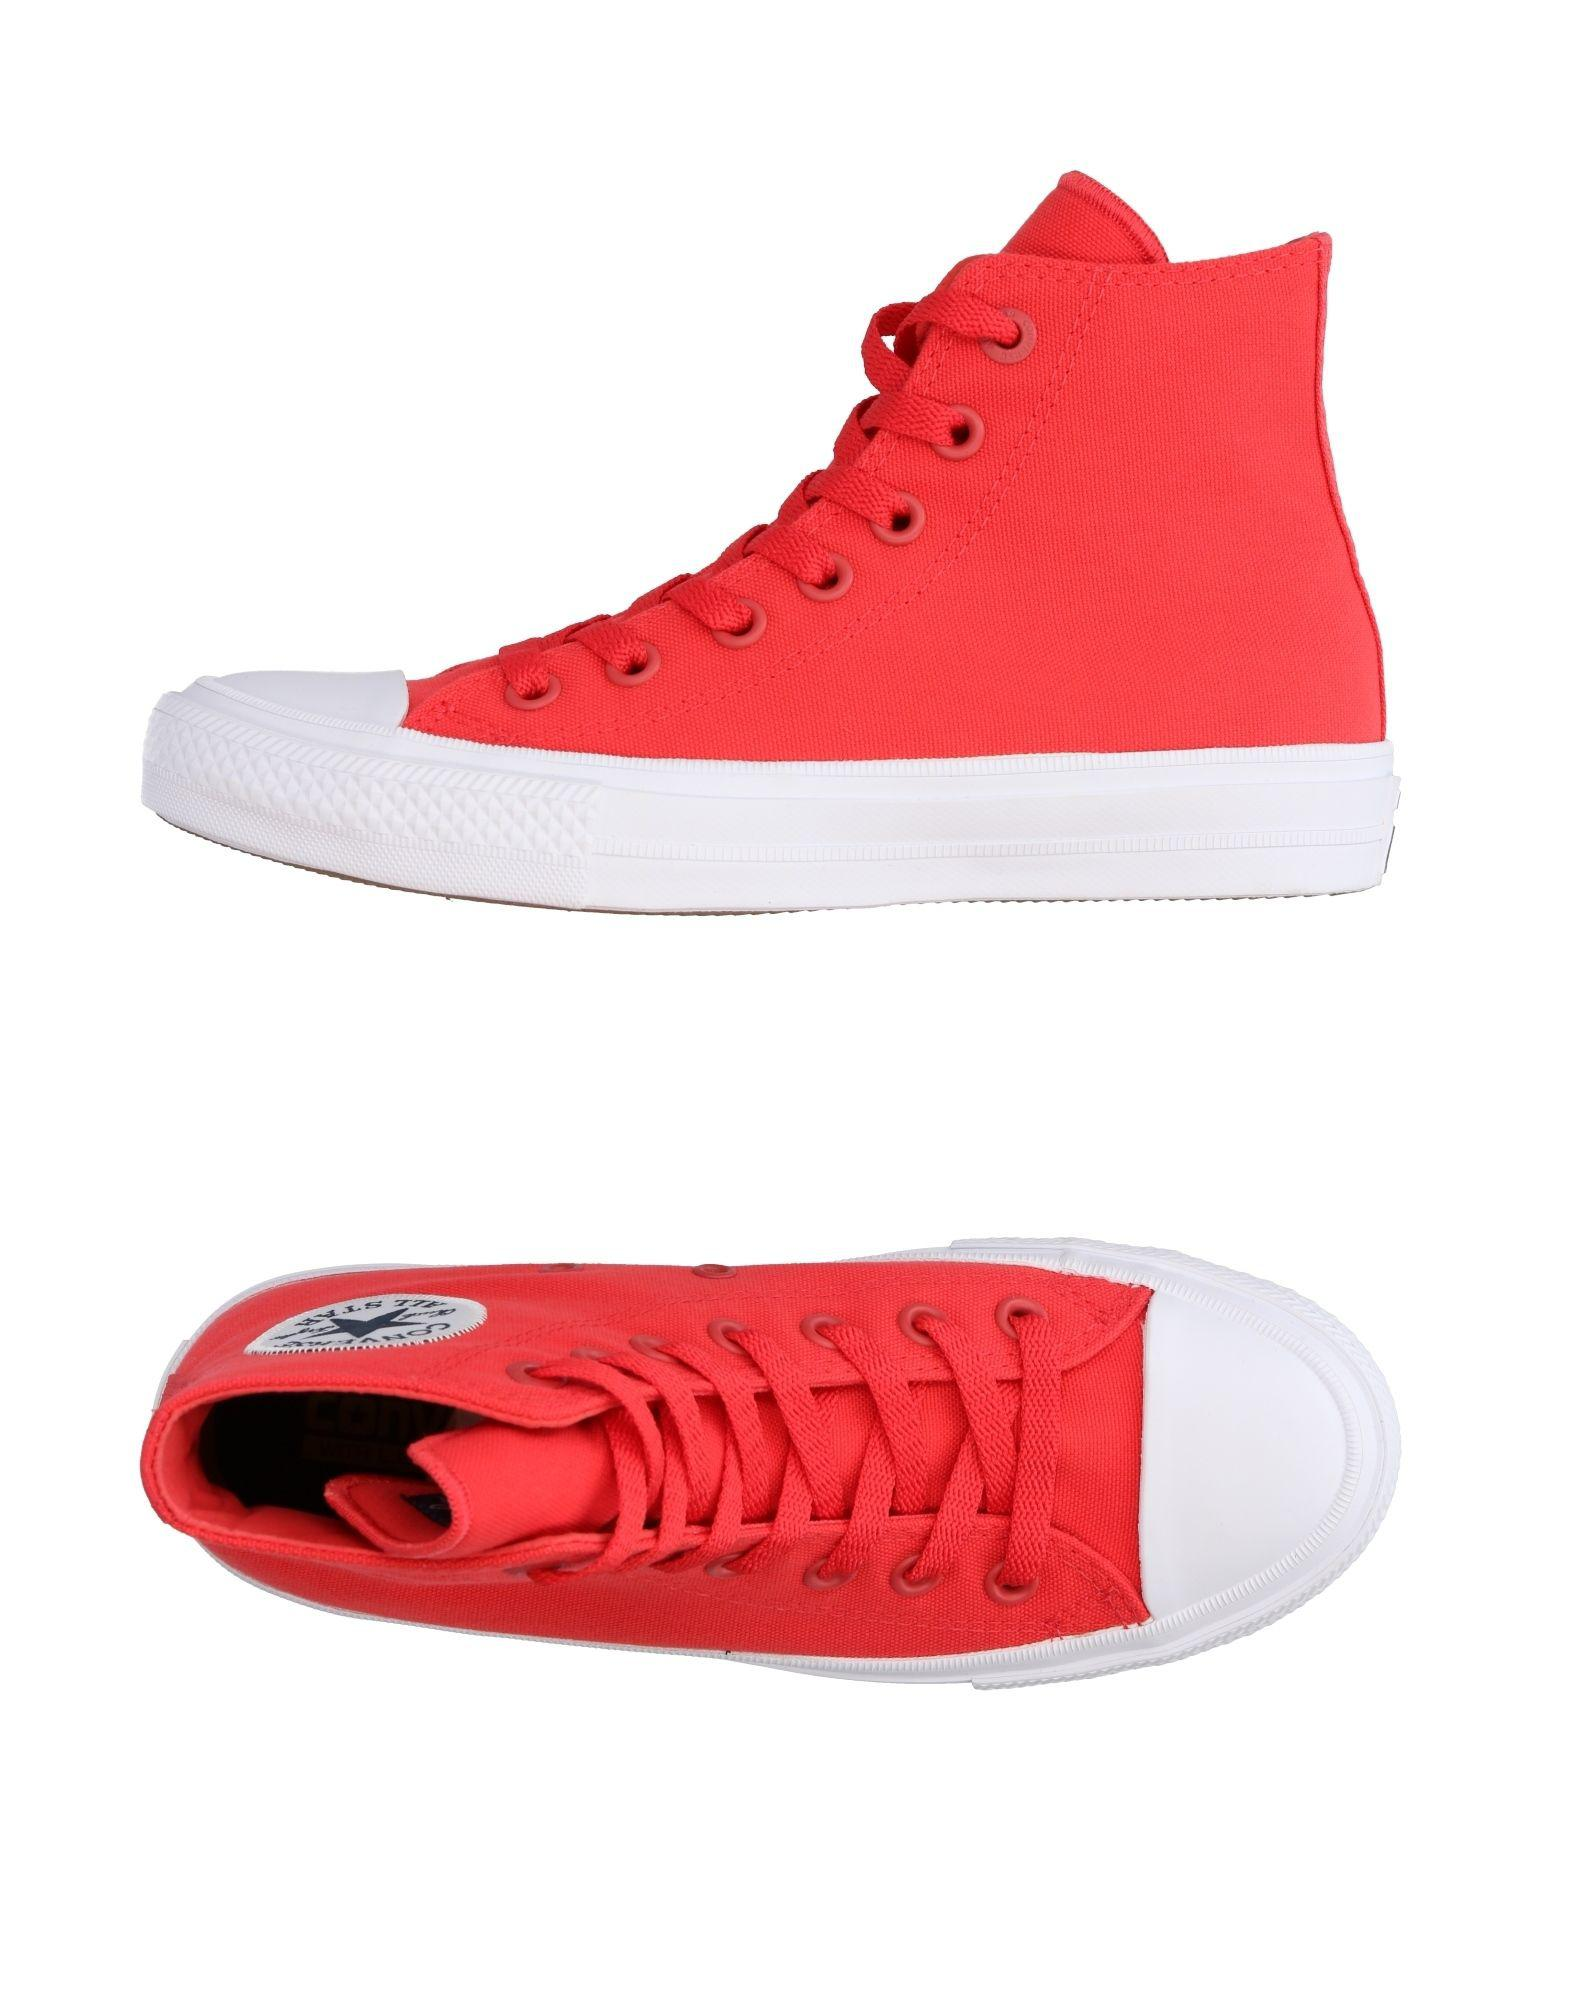 lyst converse hightops amp sneakers in red